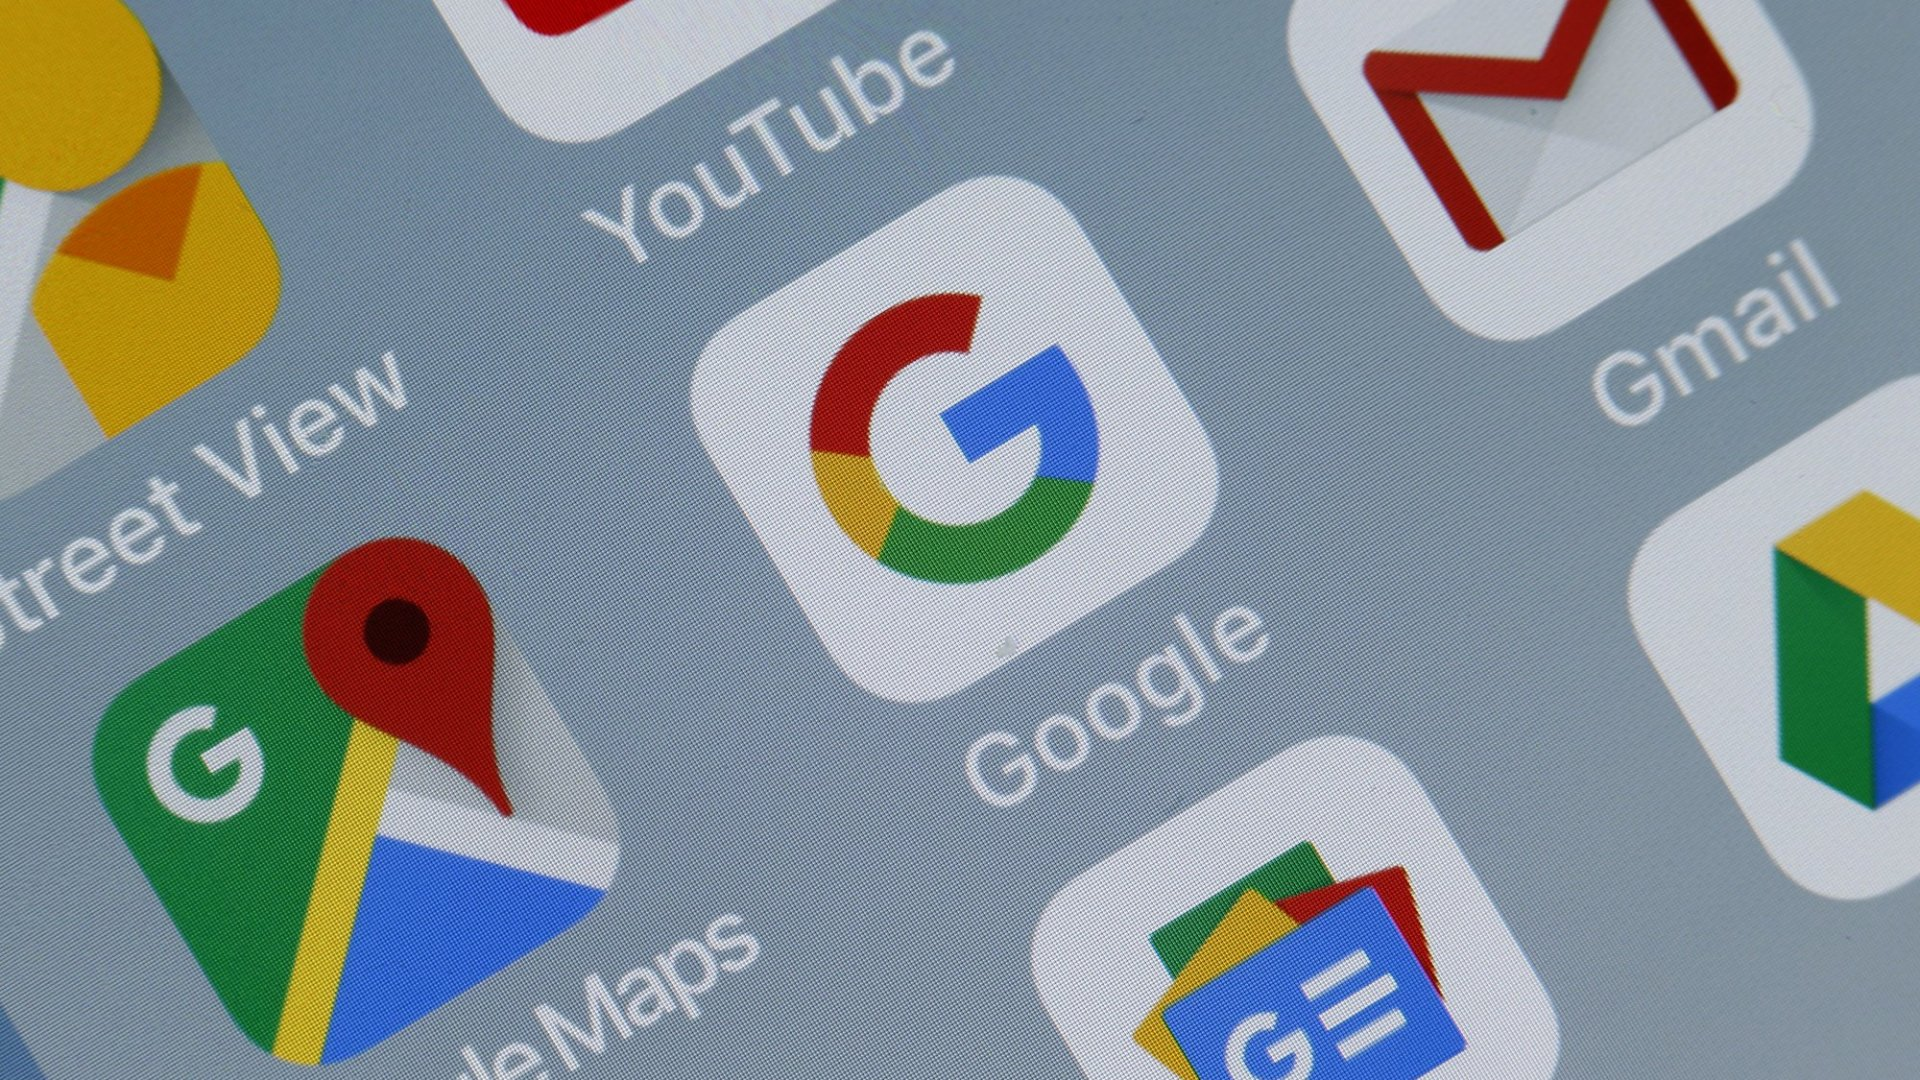 Google Just Launched a Small Business Tool to Grow Your Business. Here's How to Use It